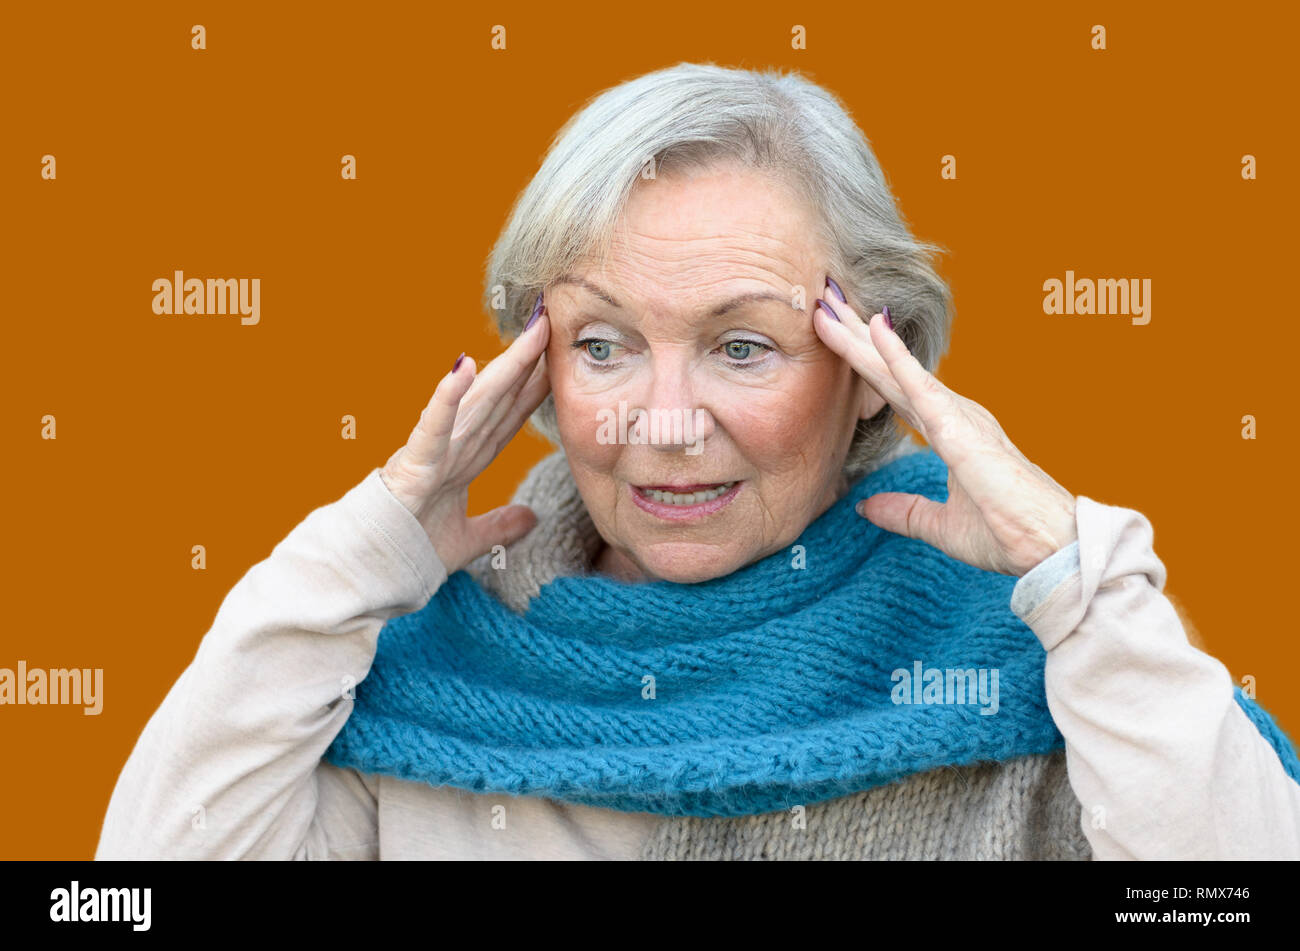 Confused and bewildered senior lady holding her hands to her temples as she looks aside, conceptual of the onset of dementia or Alzheimers disease - Stock Image